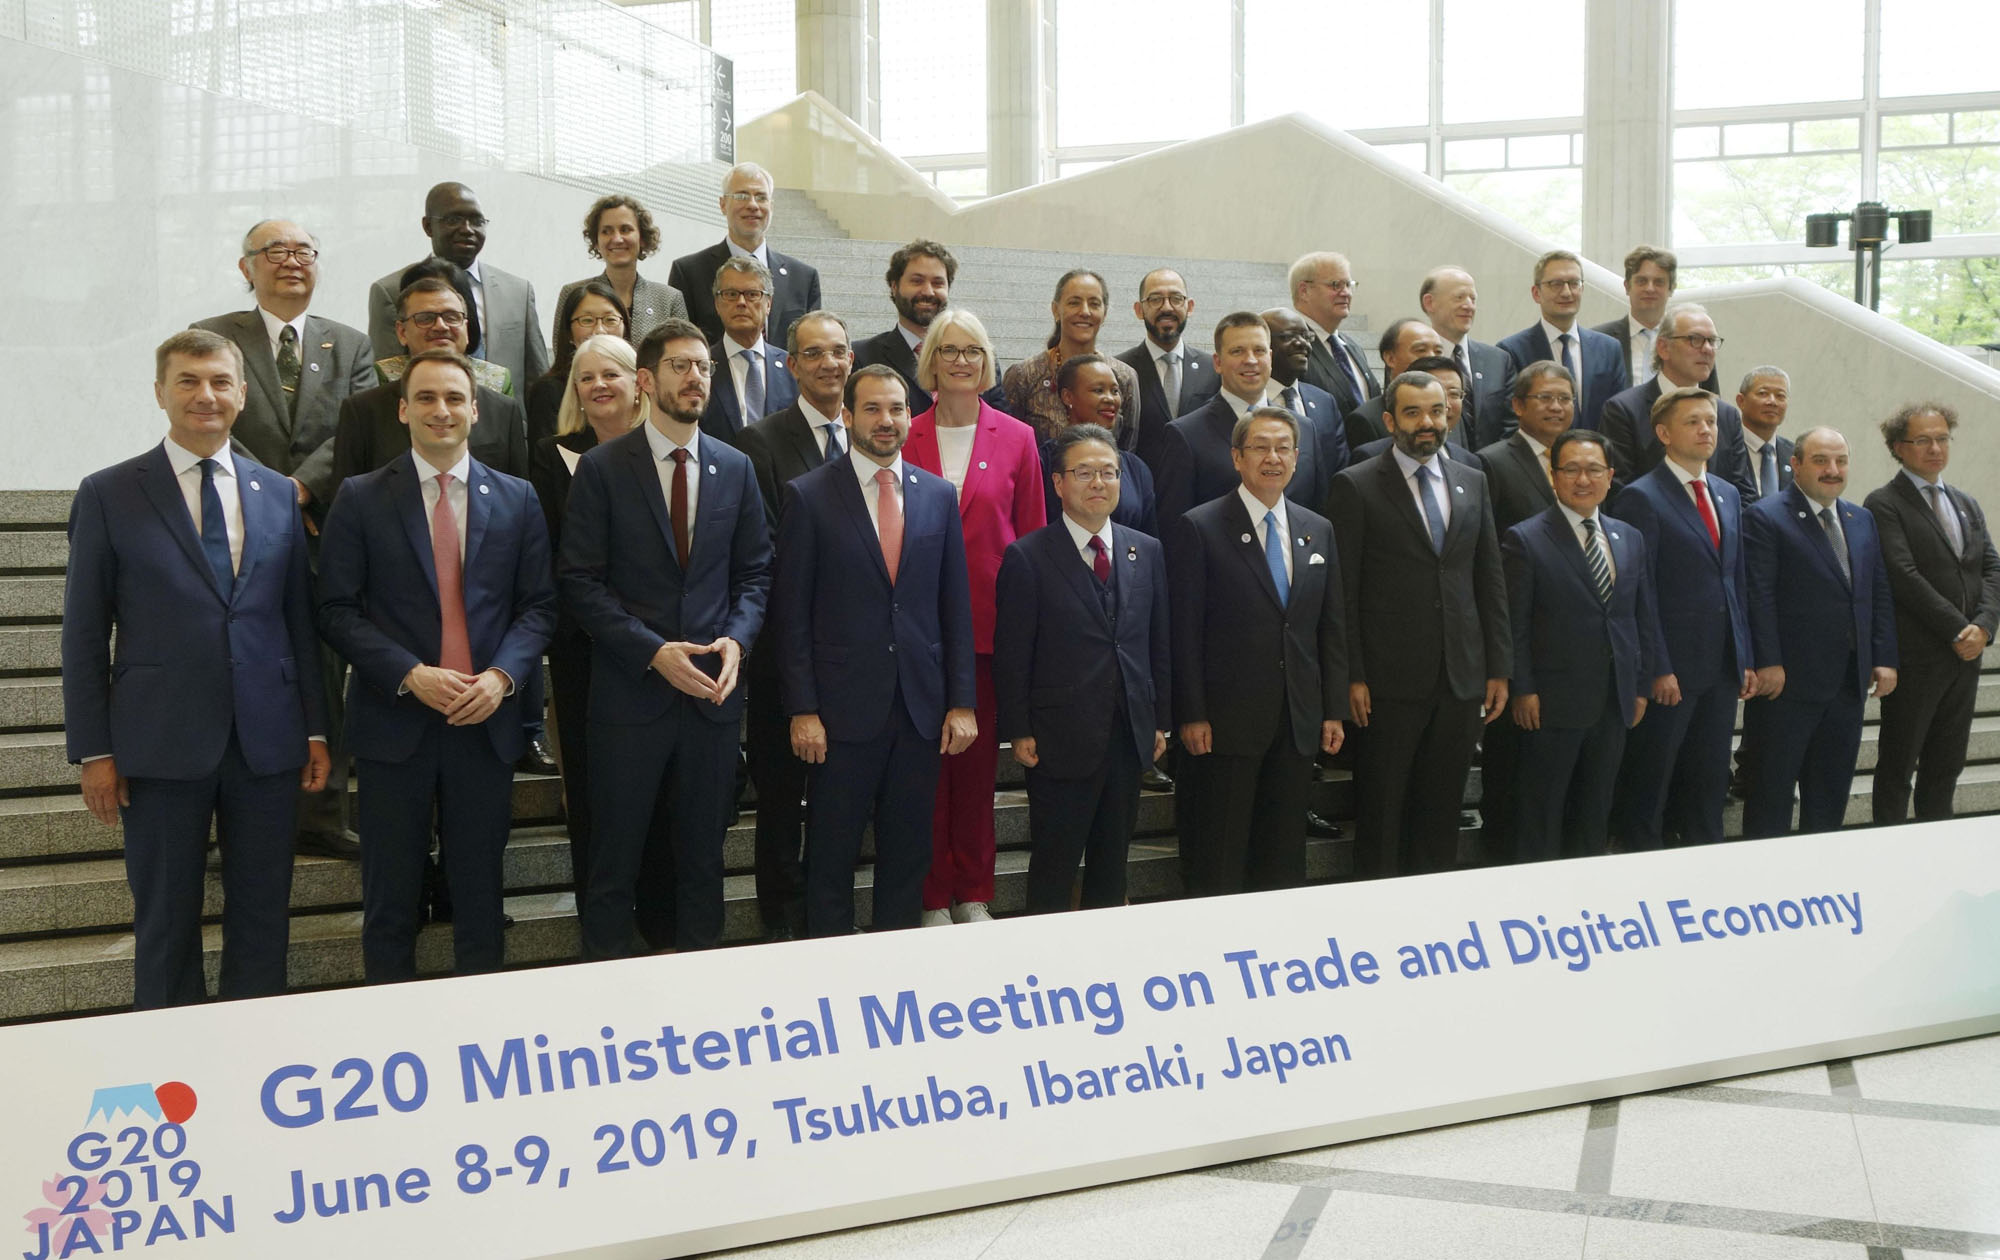 Ministers in charge of trade and digital economy issues pose Saturday during a G20 ministerial meeting in Tsukuba, Ibaraki Prefecture. | KYODO